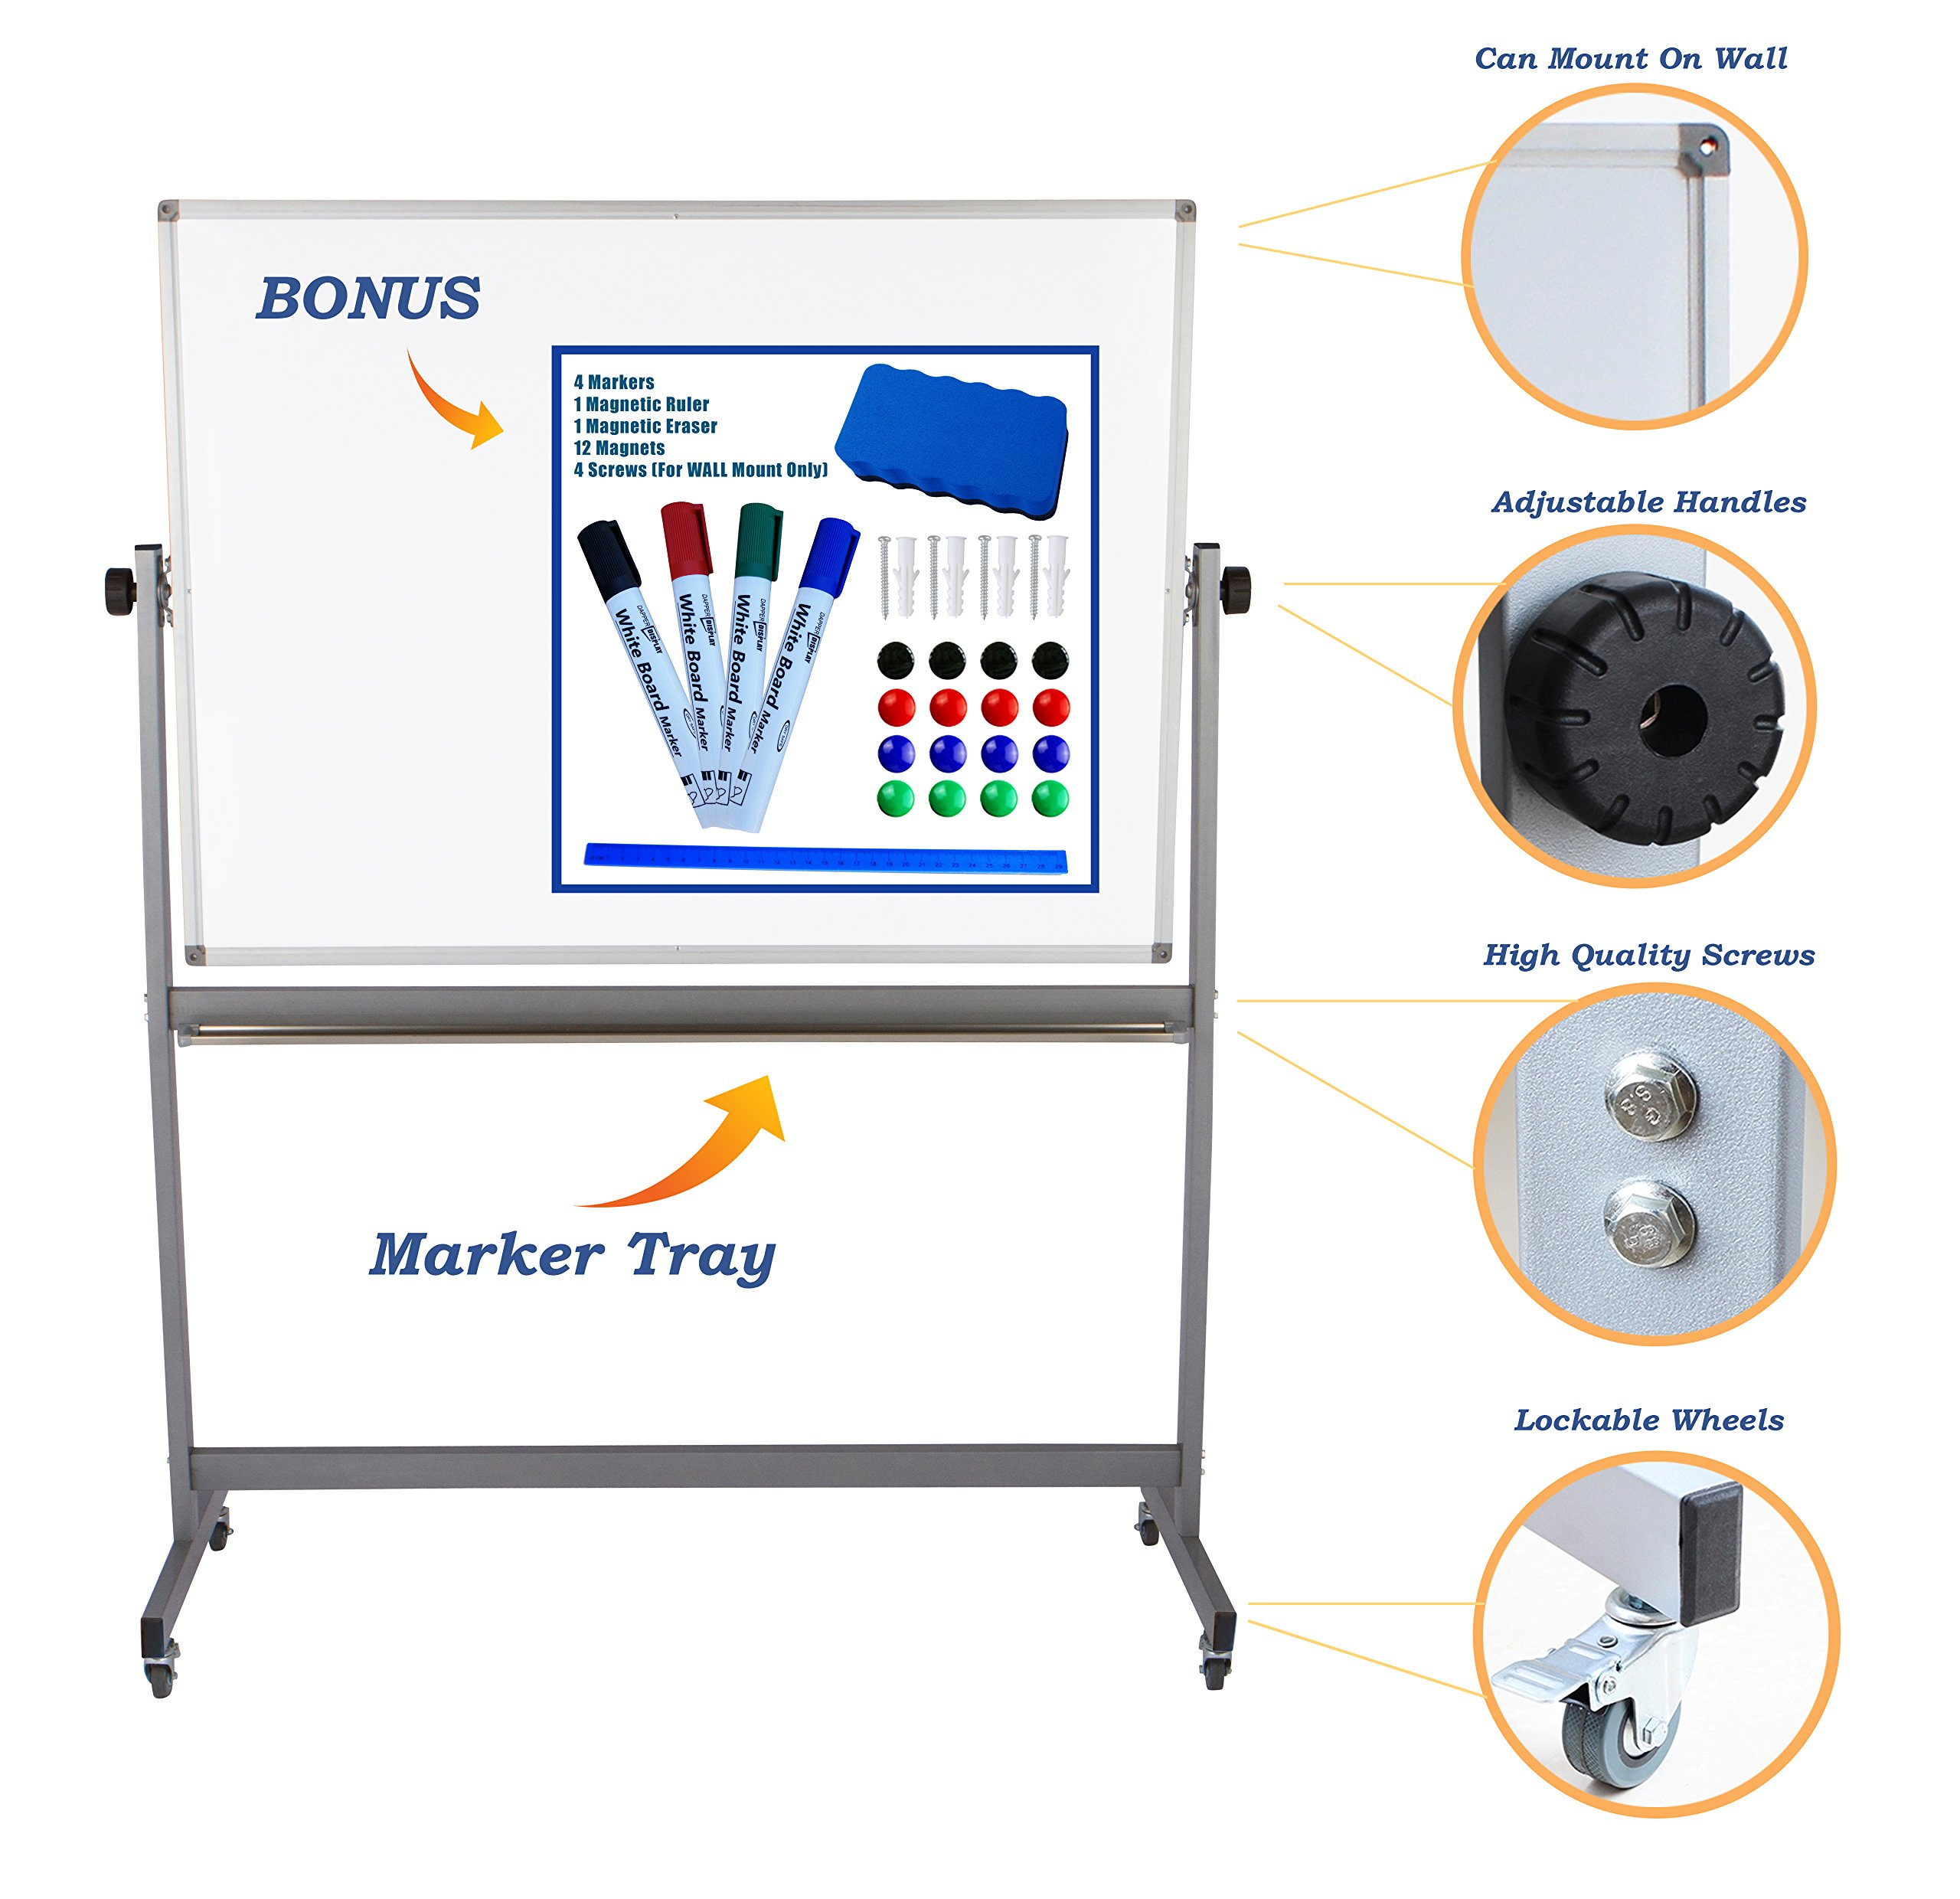 "Magnetic Mobile Whiteboard Large On Stand Double Sided Flip Over Dry Erase Reversible Portable Home Office Classroom Board 36 x 48"" Inch with 4 Markers 12 Magnets Eraser and Ruler Easel Aluminum Frame by Dapper Display (Image #1)"